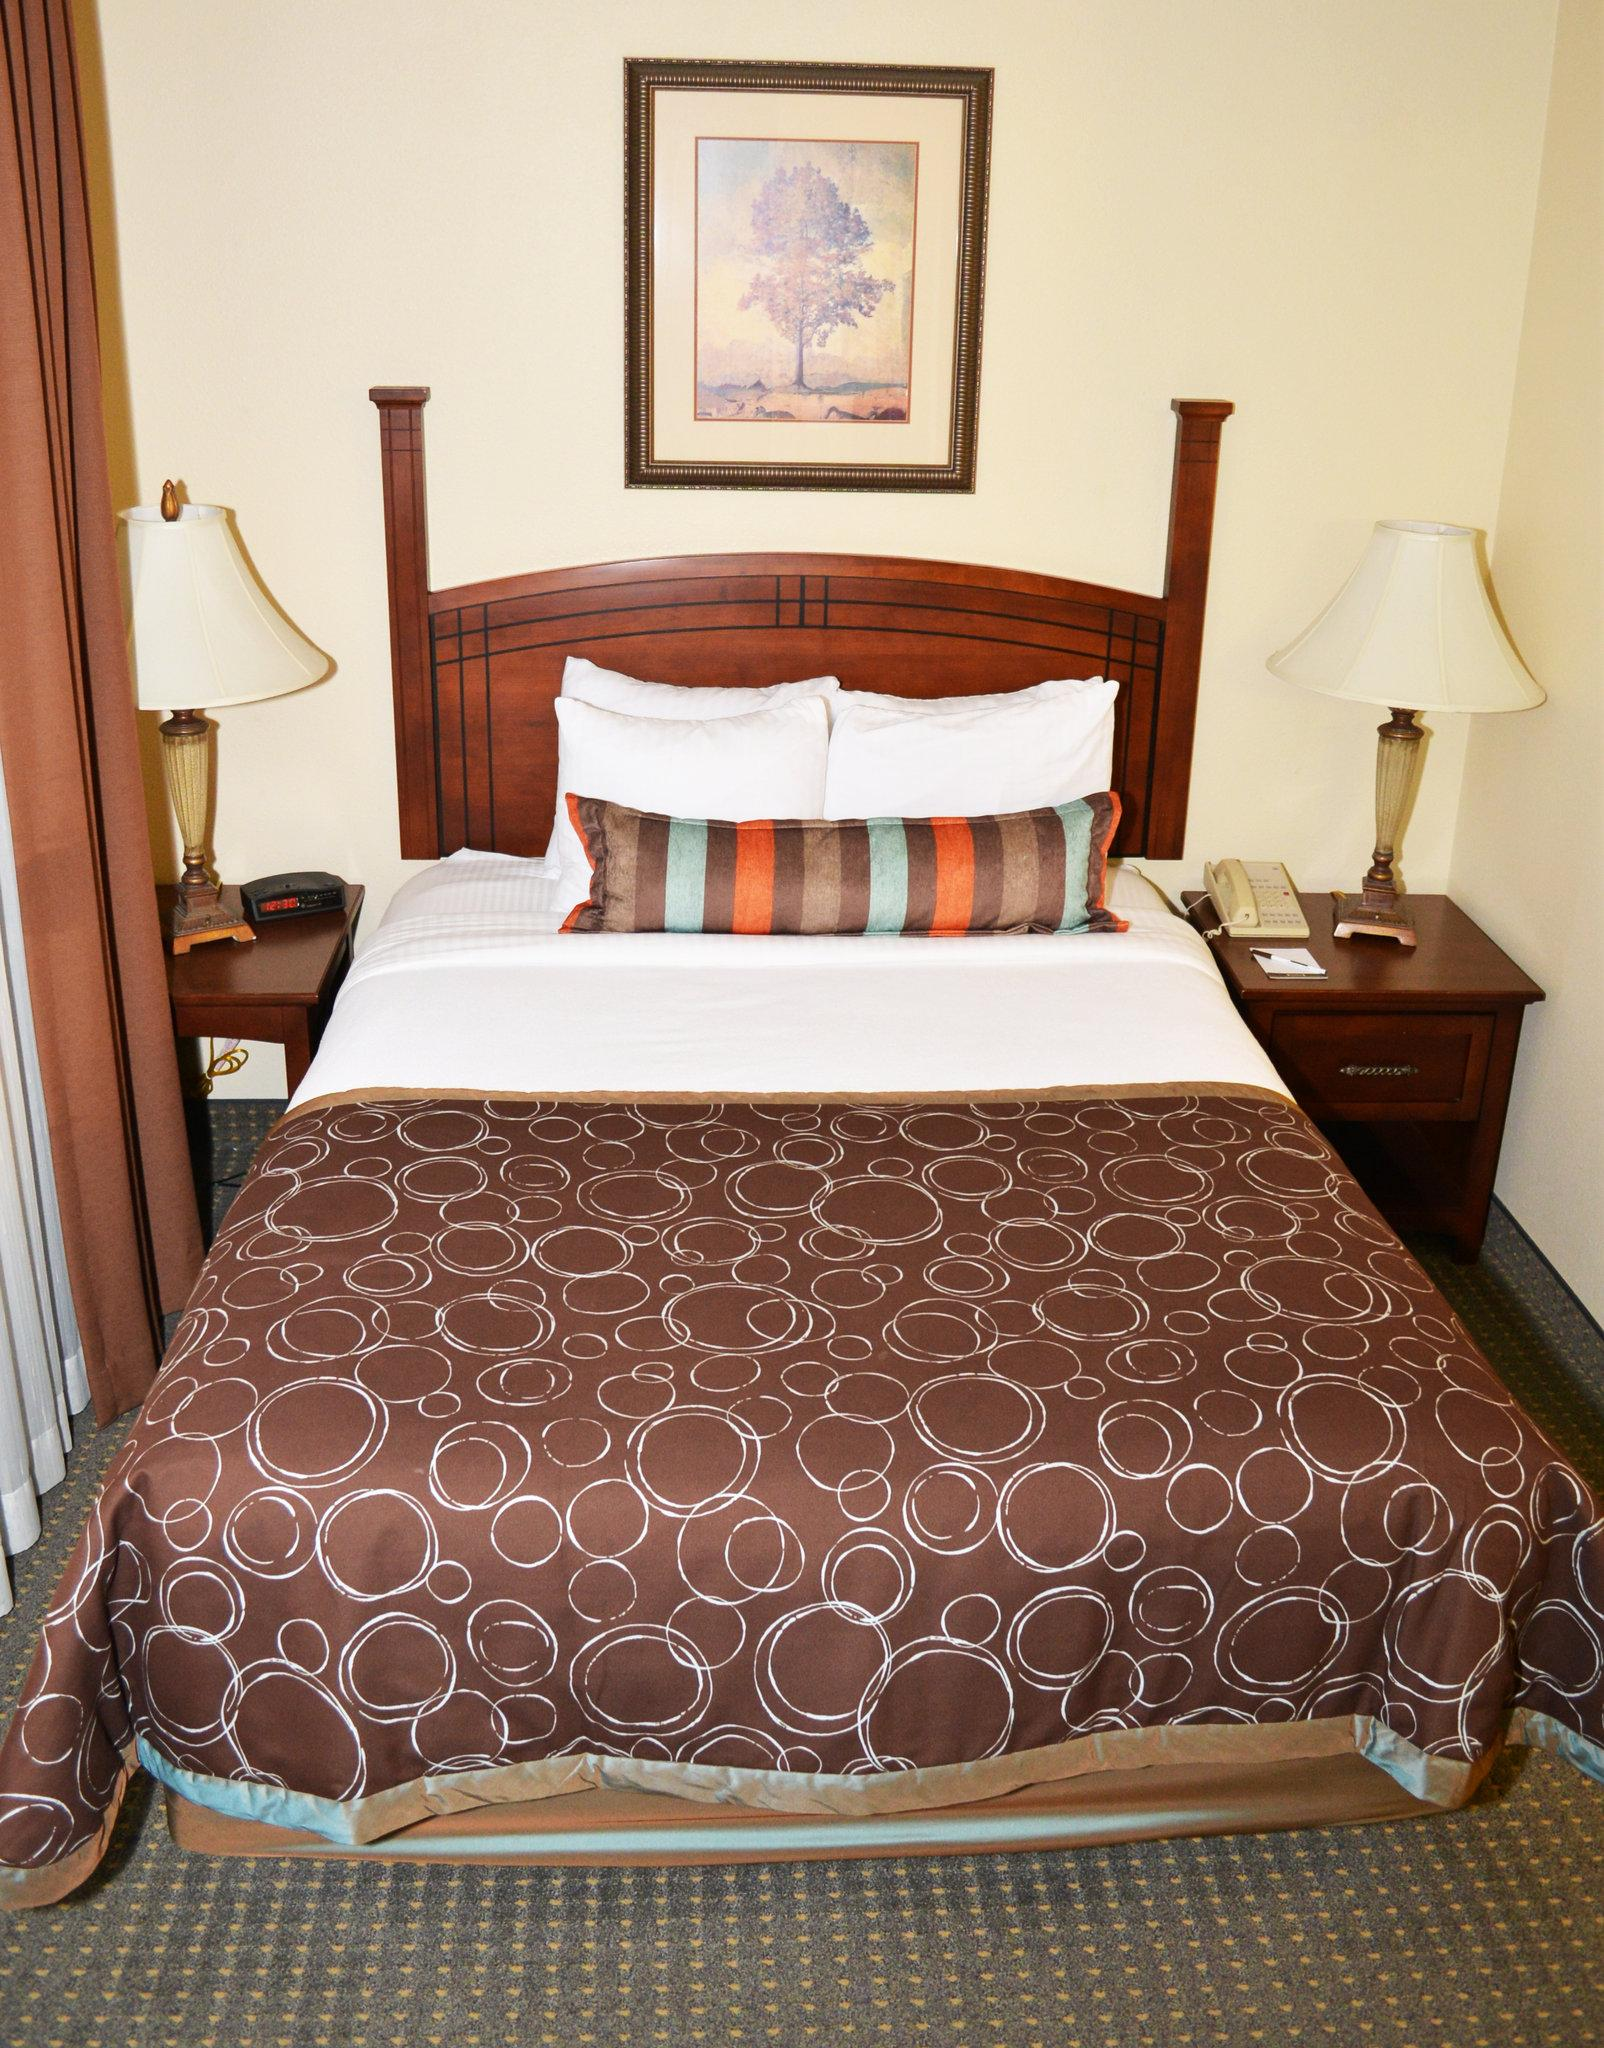 Staybridge Suites Dallas - Addison